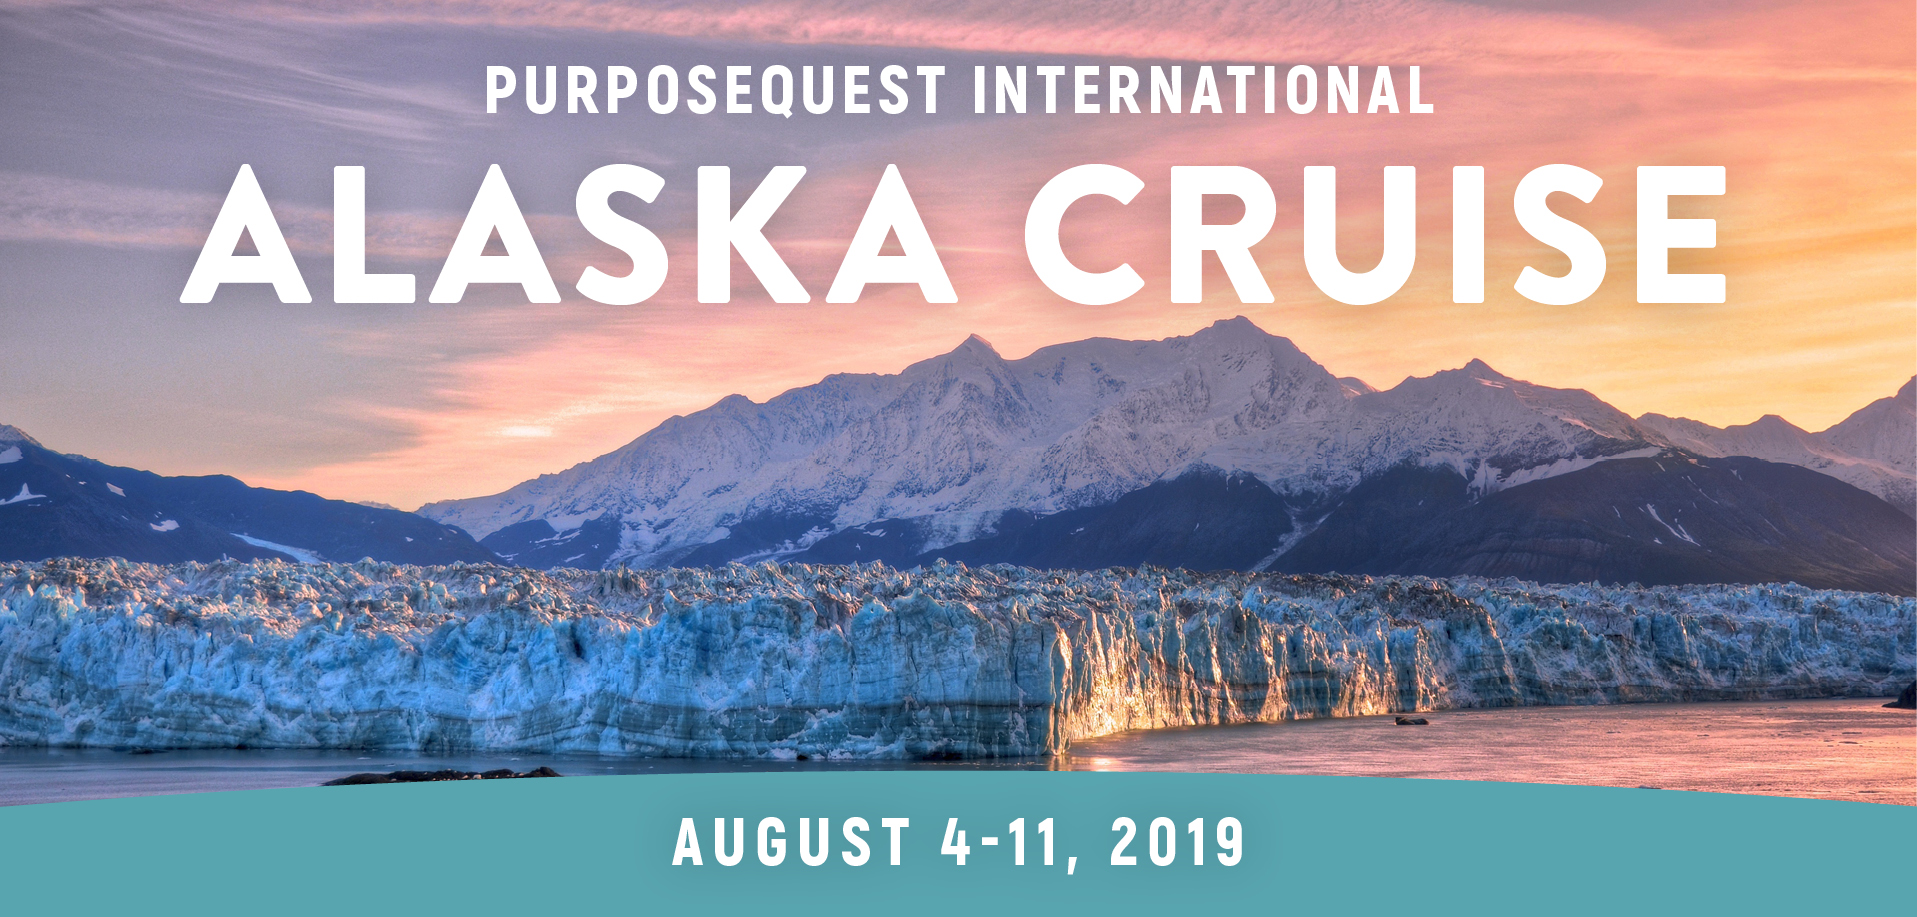 Take a Christian Cruise with PurposeQuest International - Christian Cruise to Alaska - August 4-11, 2019